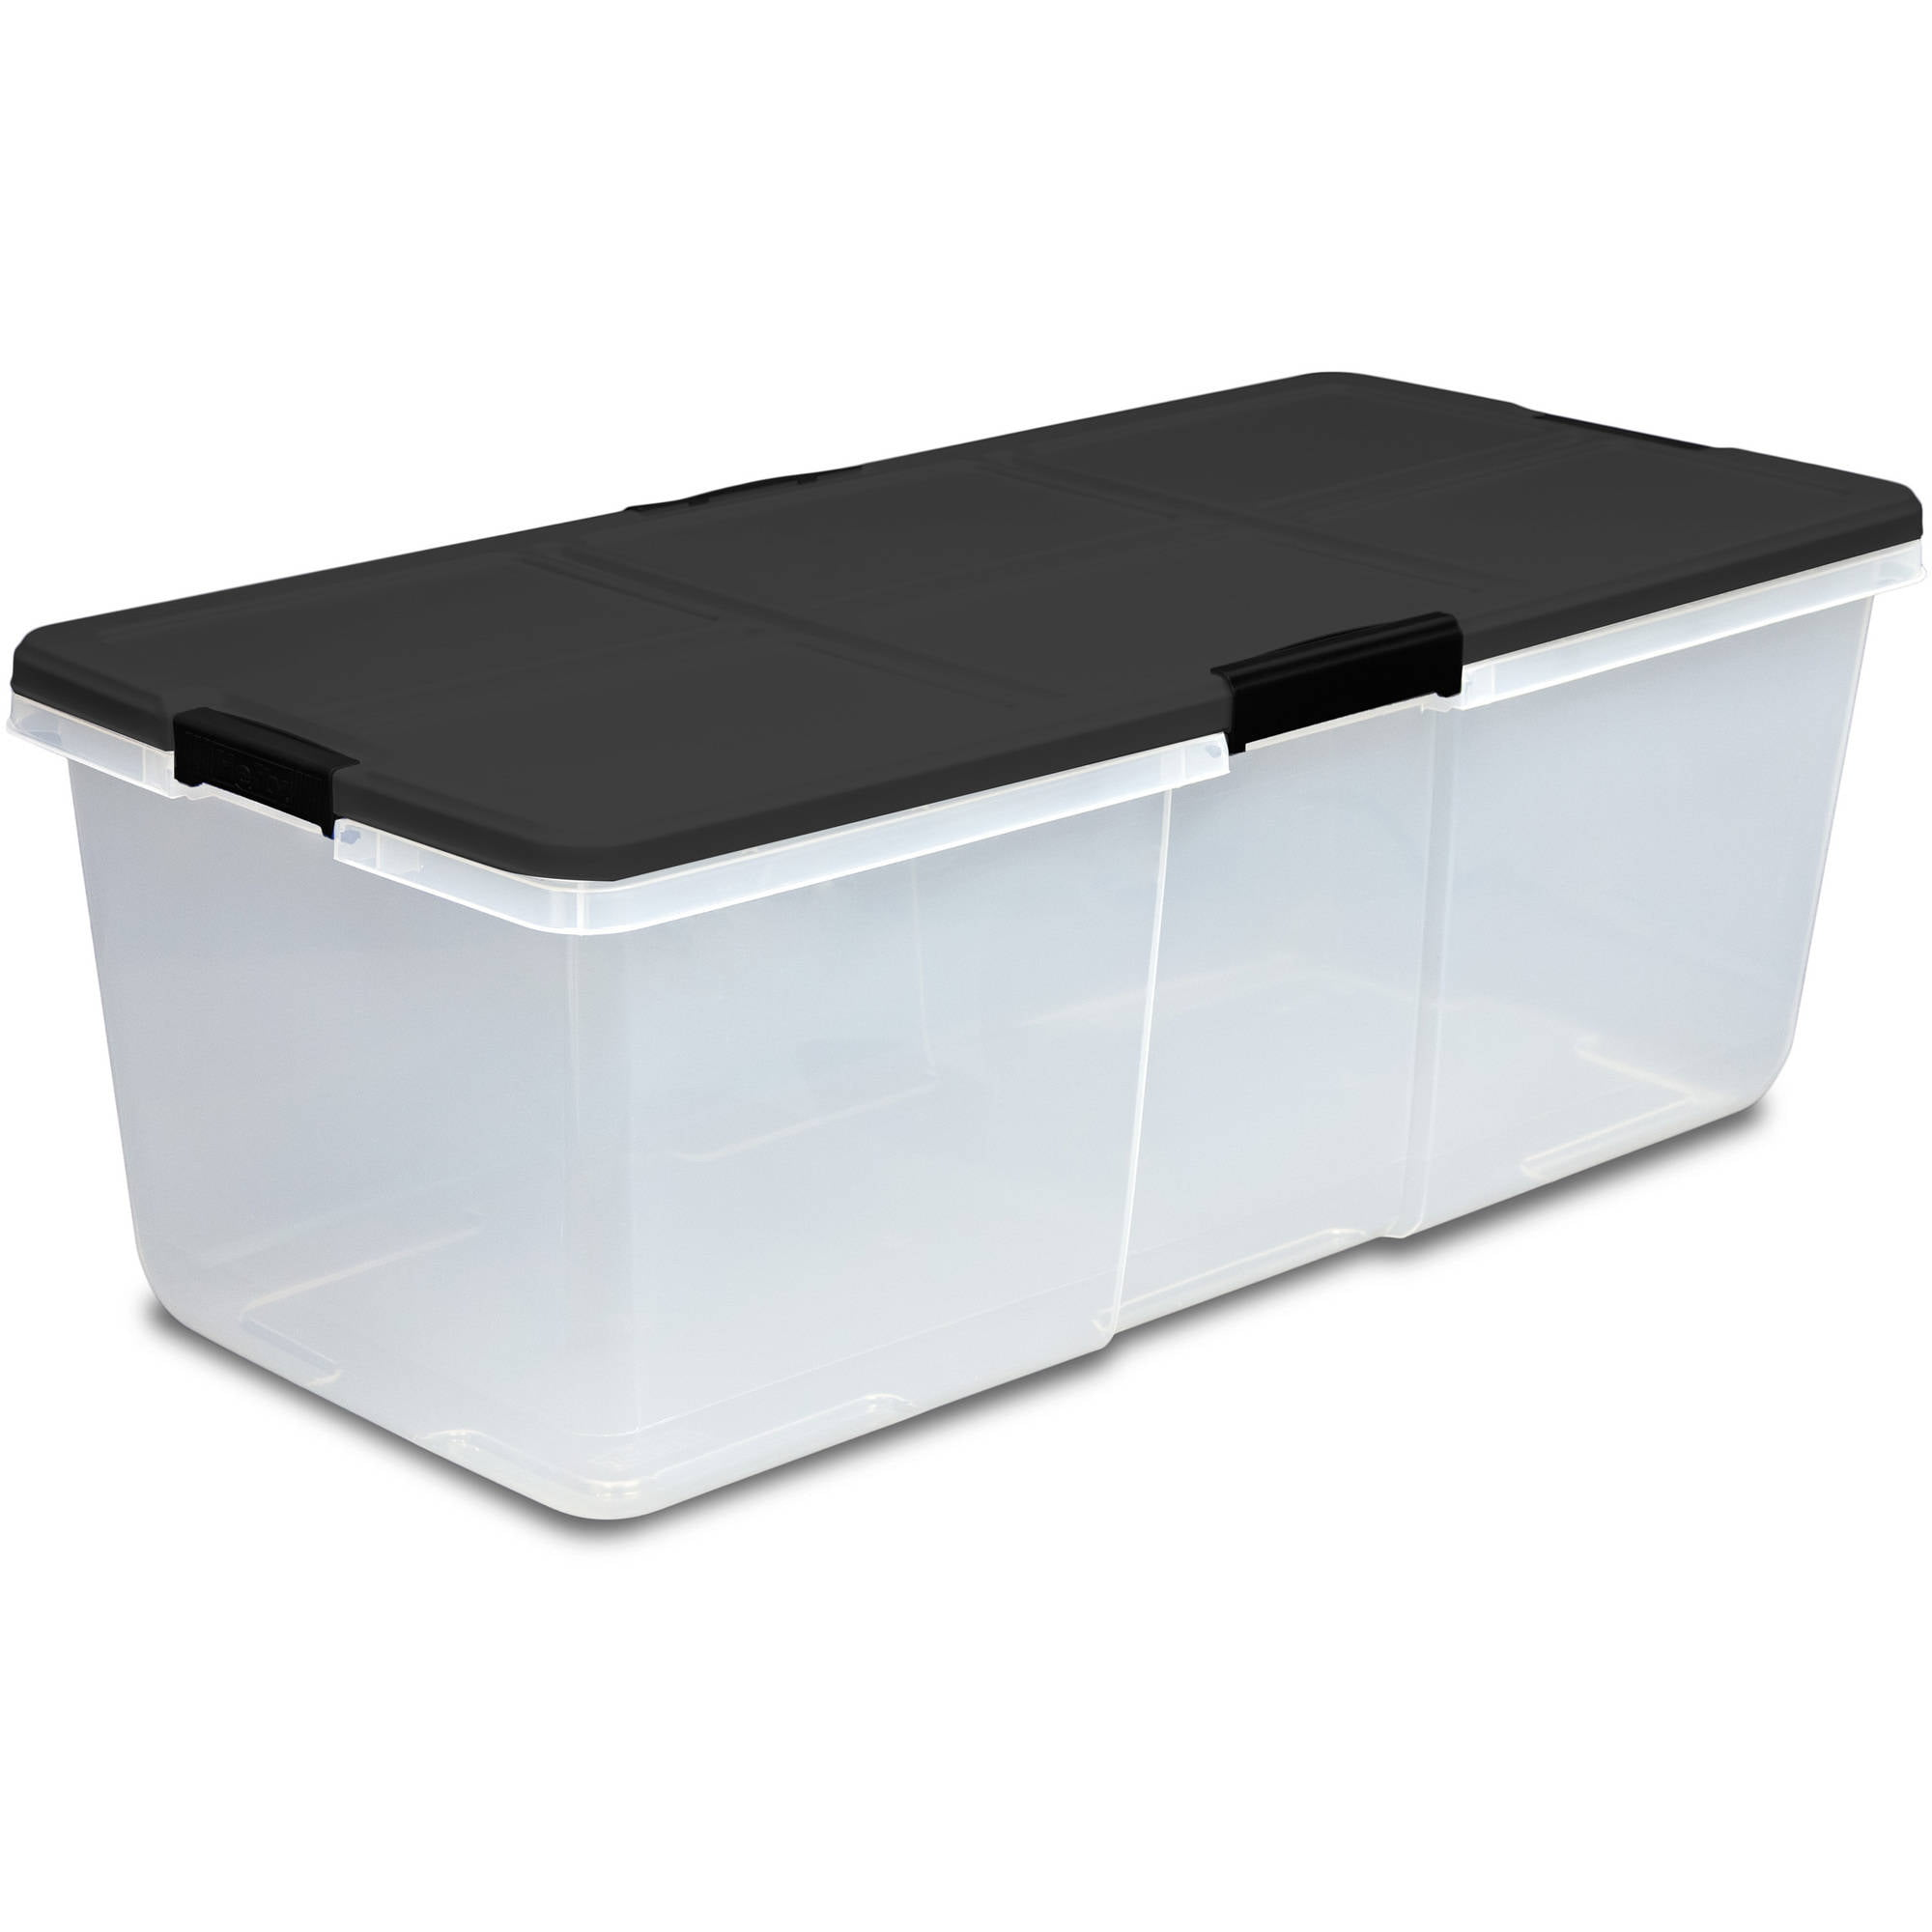 Hefty MATTE Black Storage Bins 100 Qt. XL Stackable Bin with Latch Clear - Walmart.com  sc 1 st  Walmart & Hefty MATTE Black Storage Bins 100 Qt. XL Stackable Bin with Latch ...